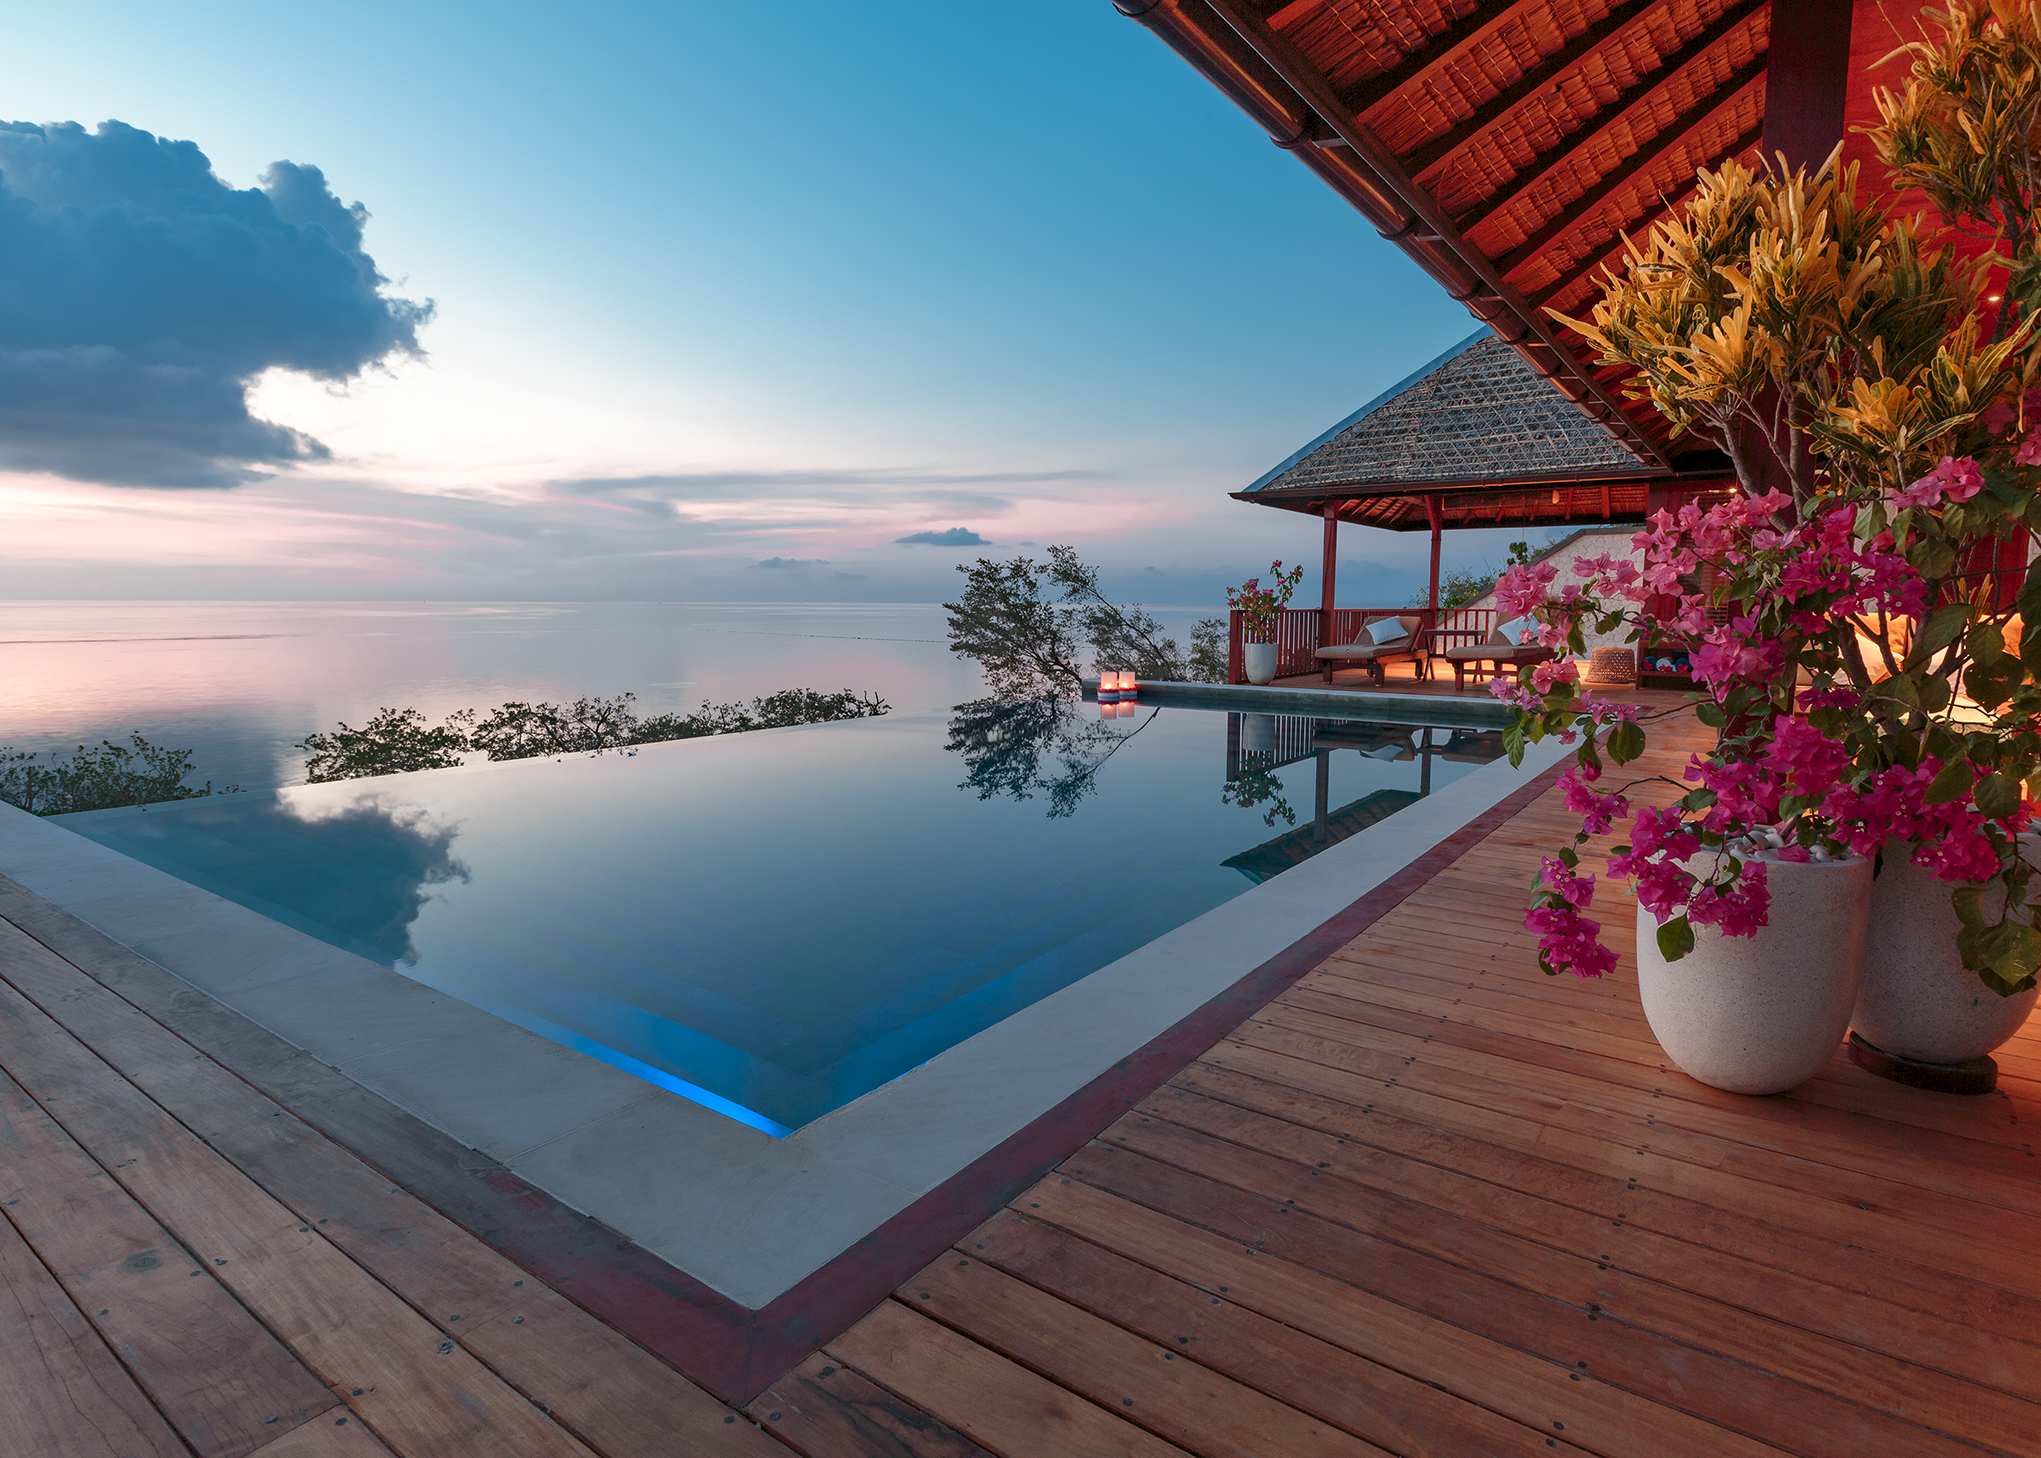 Relaxing by the Villa pool after a day of diving or snorkeling is a memory that stays with many a Wakatobi guest.